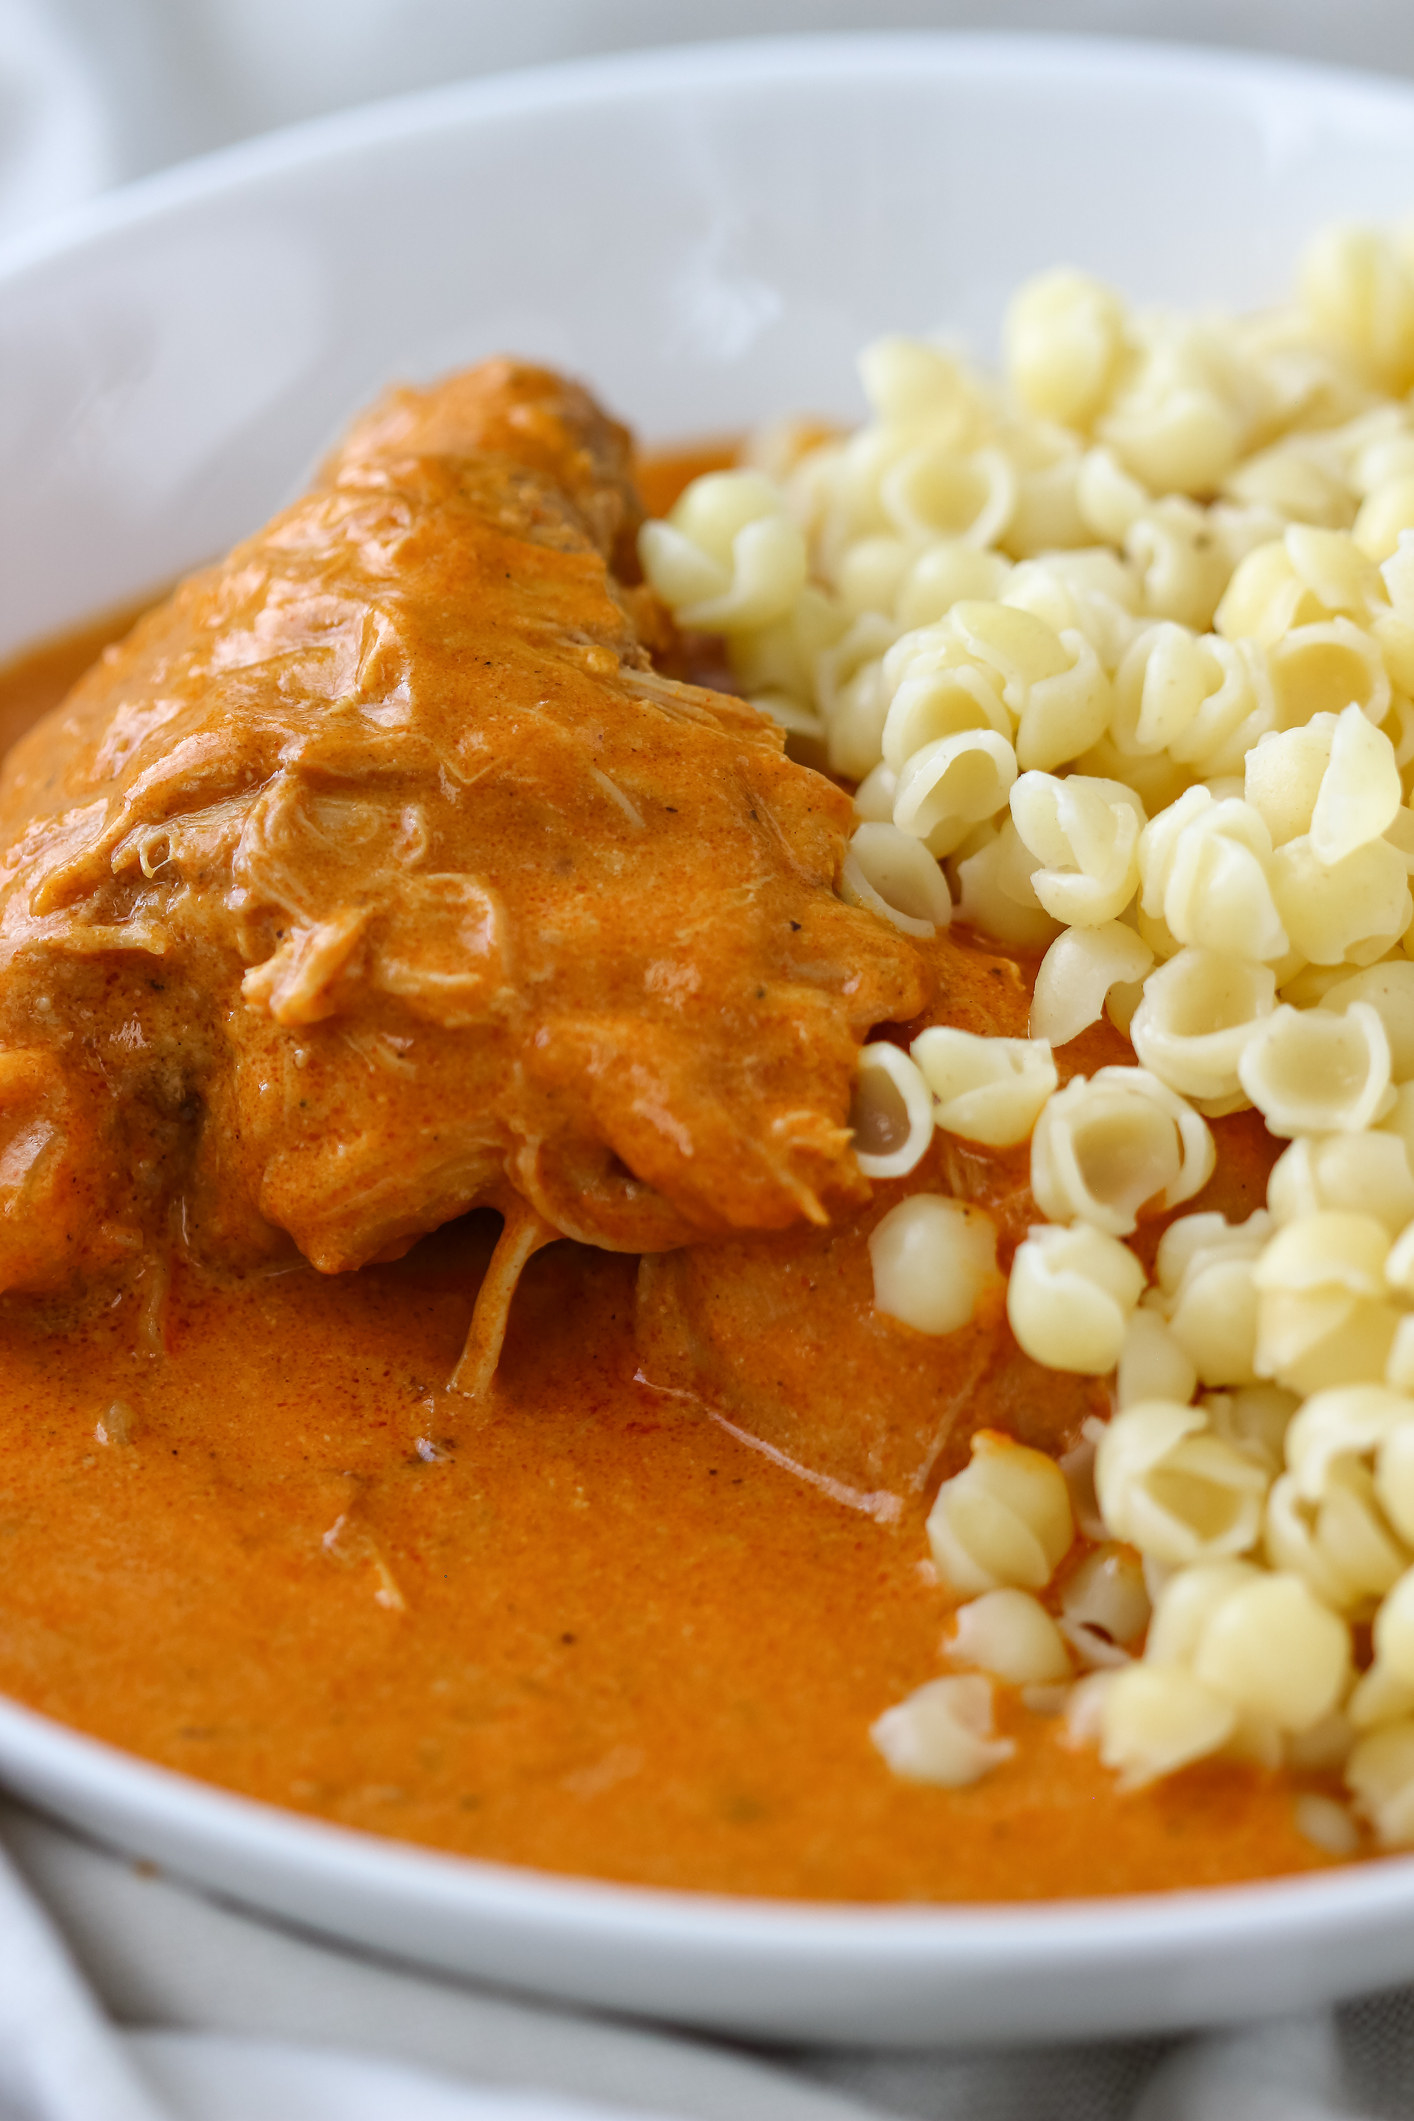 tender piece of chicken on the bone with a creamy orange paprika sauce and small shell-shaped pasta on the size